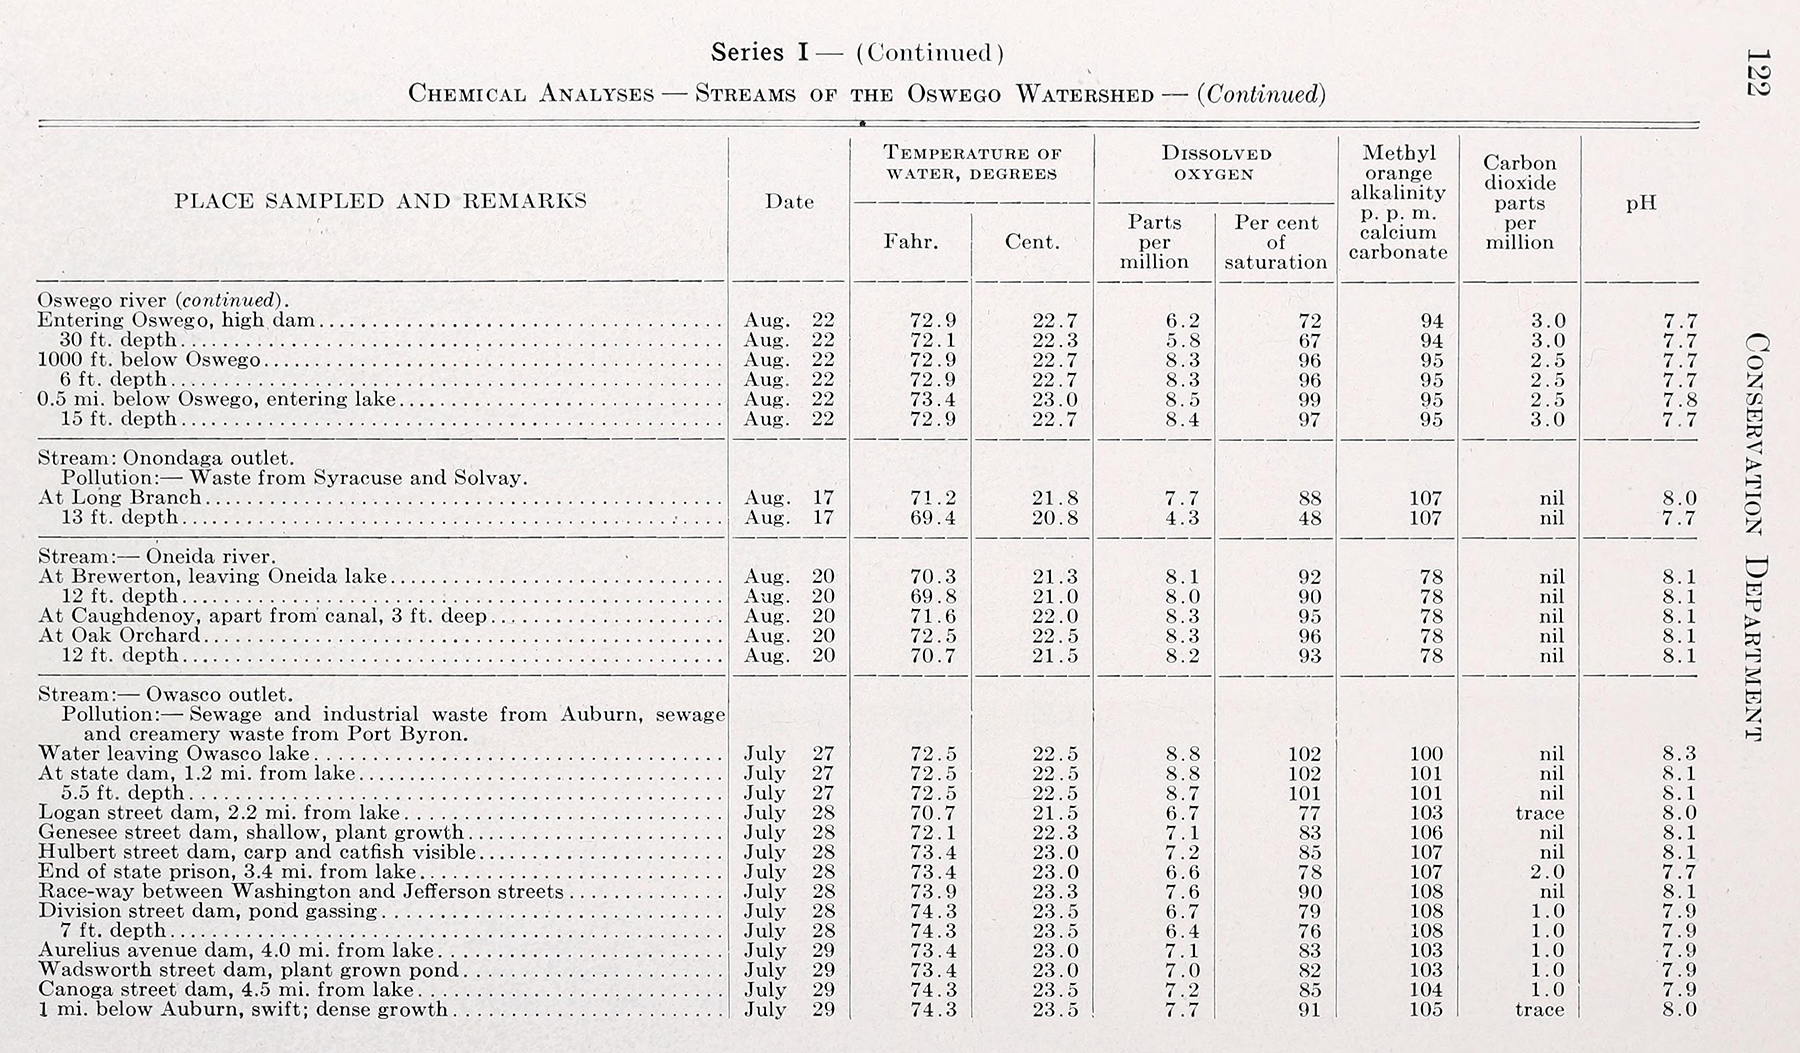 table with various text and numerical data